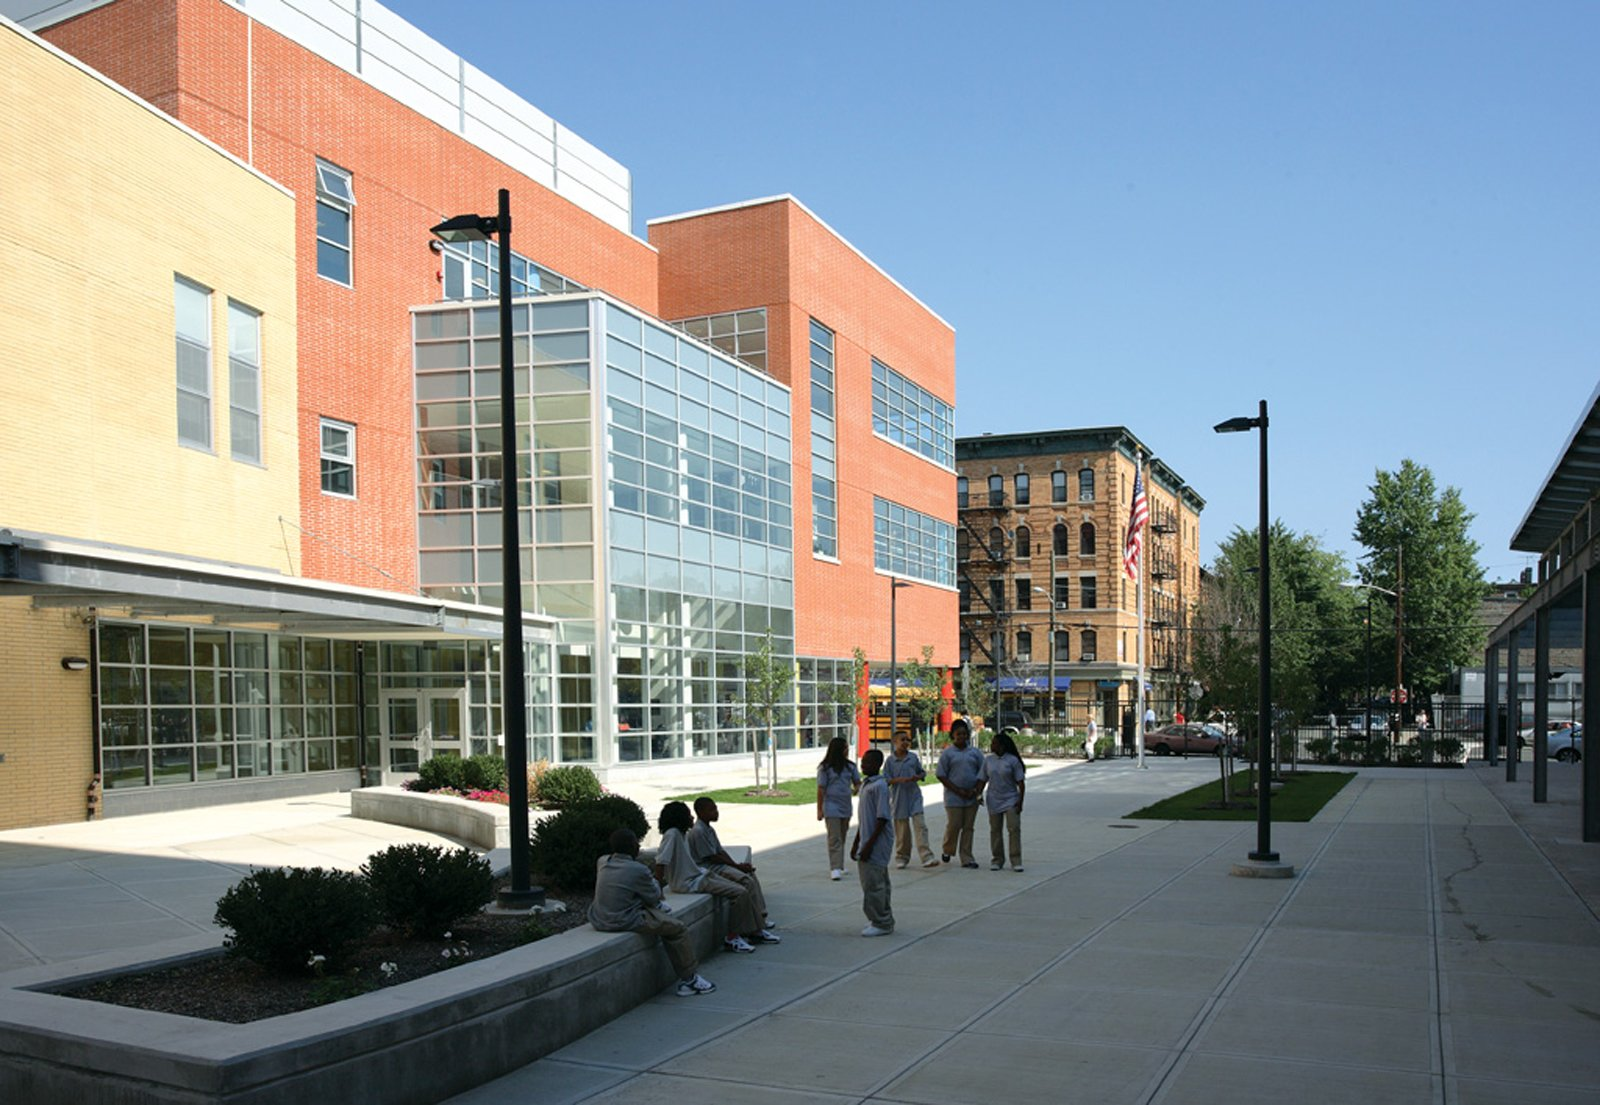 """The urban space is an inspiration for how buildings can facilitate interaction. One example is the Frank R. Conwell School Campus in Jersey City, New Jersey, by Gruzen Samton and IBI Group. """"Over and over you see that the connection to the street is important, whether it's a collection of buildings or a single building it's conceived of in an urban way,"""" Mellins says. """"This open area becomes like a main street that you can look across and see what's happening."""" This allows for both easy planning of events and chance encounters. Photo by James D'Addio.  Photo 7 of 16 in Edgeless School: Design for Learning"""